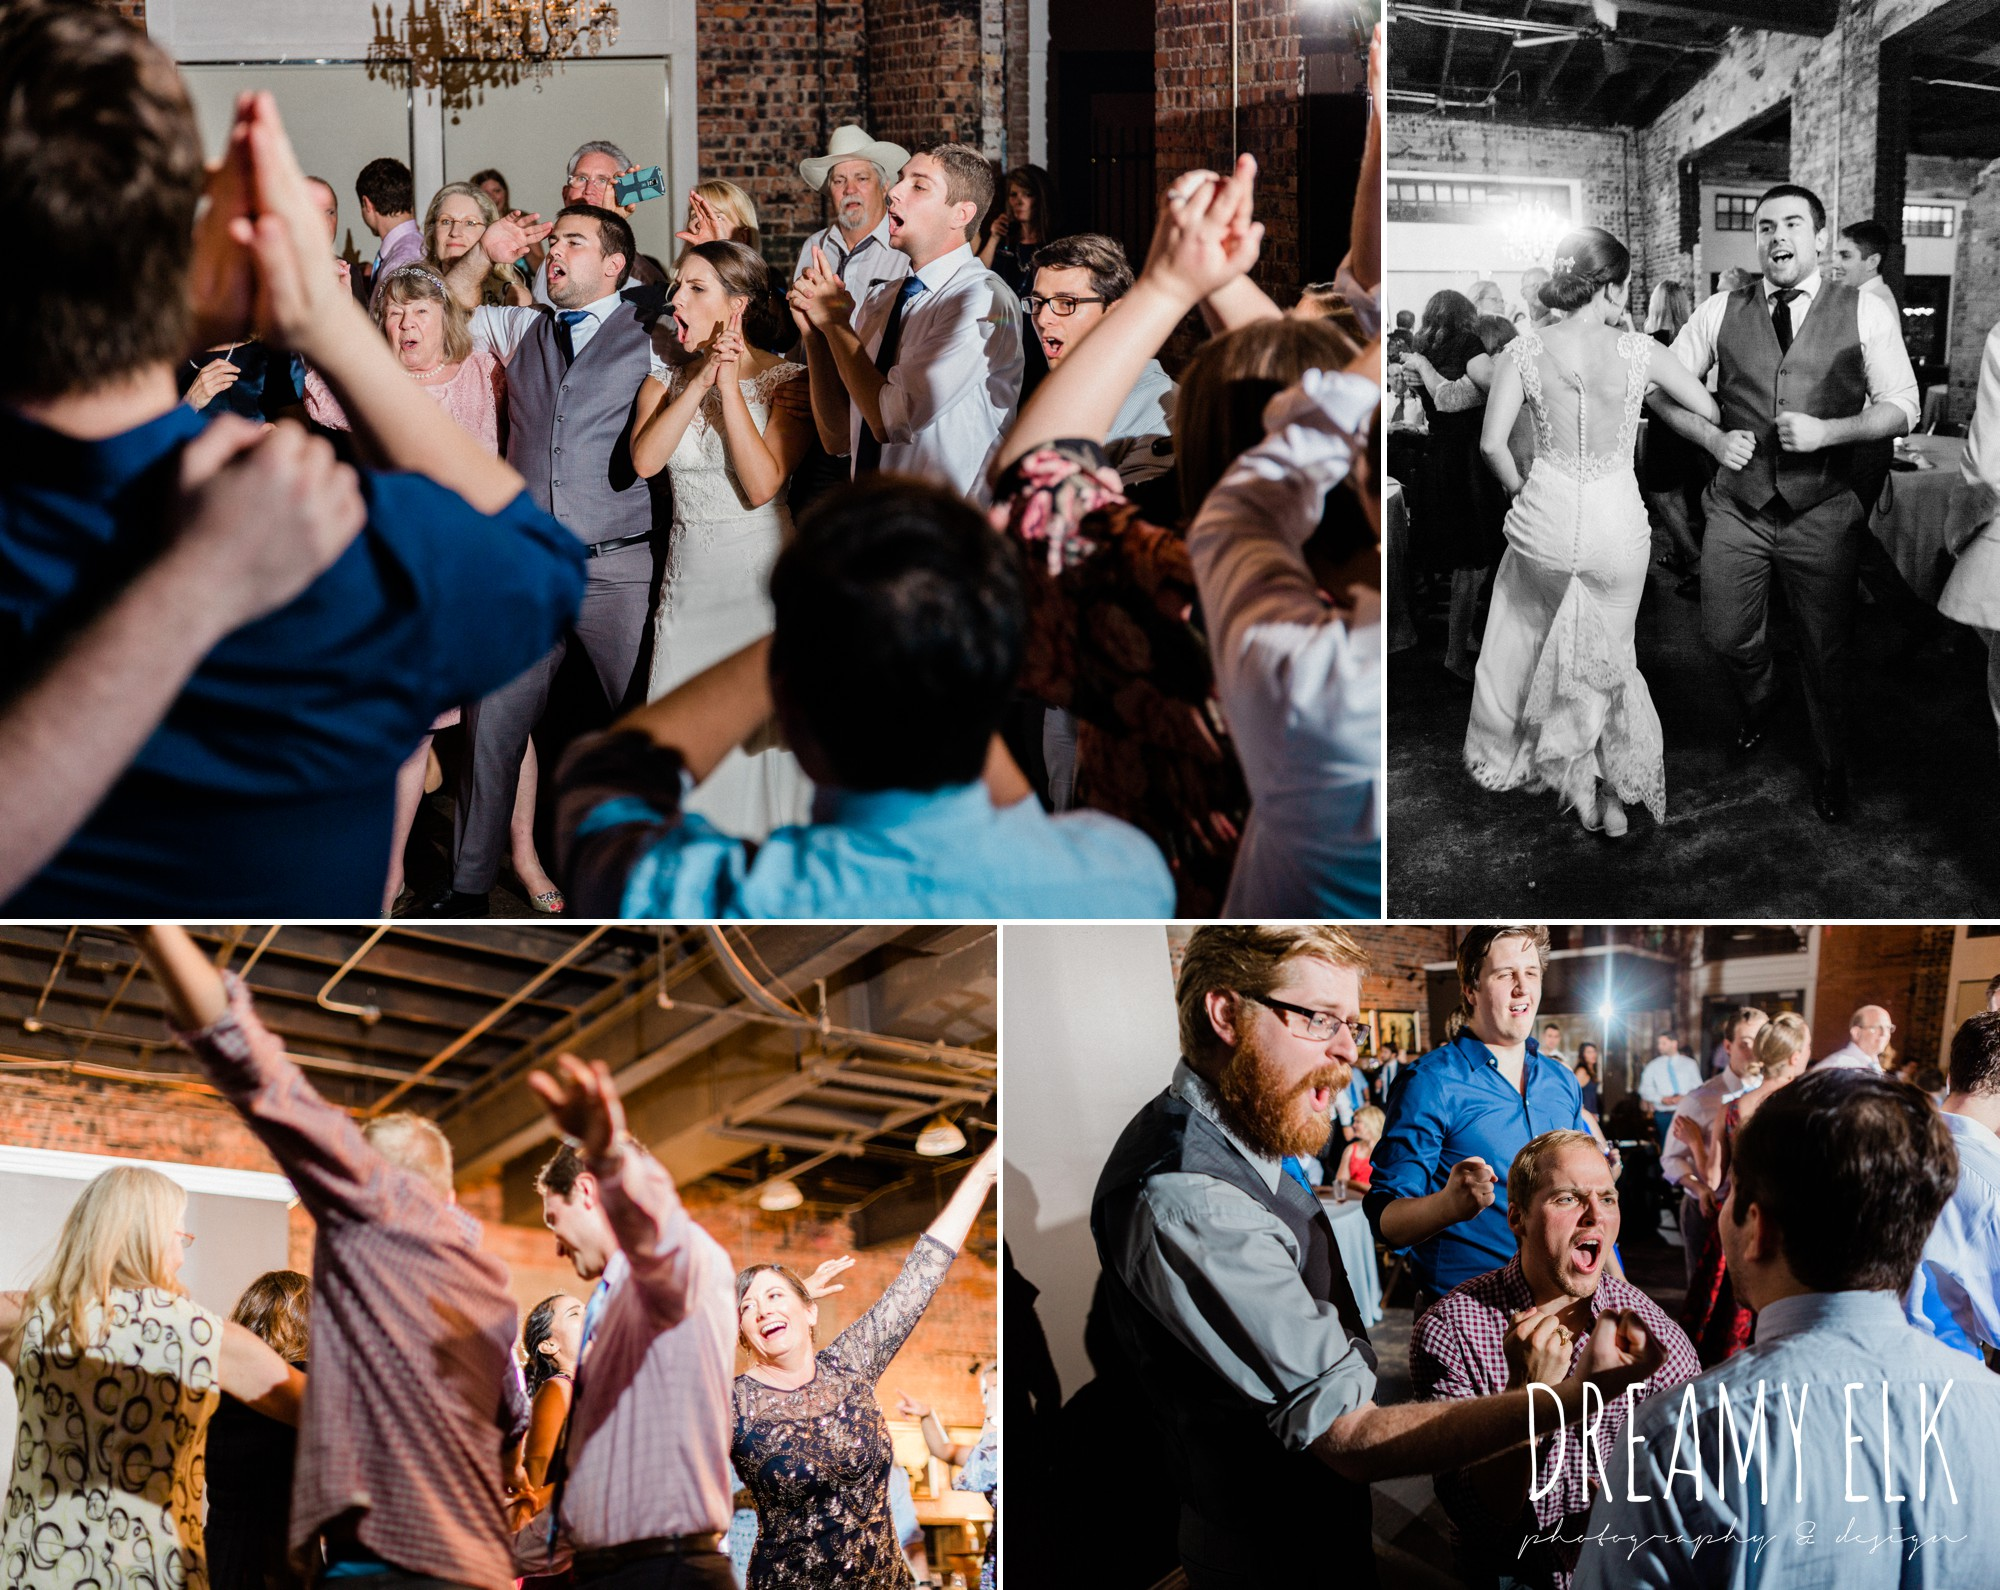 aggieland dj, wedding reception, ashley and company, downtown 202, unforgettable floral, spring wedding photo college station texas, dreamy elk photography and design